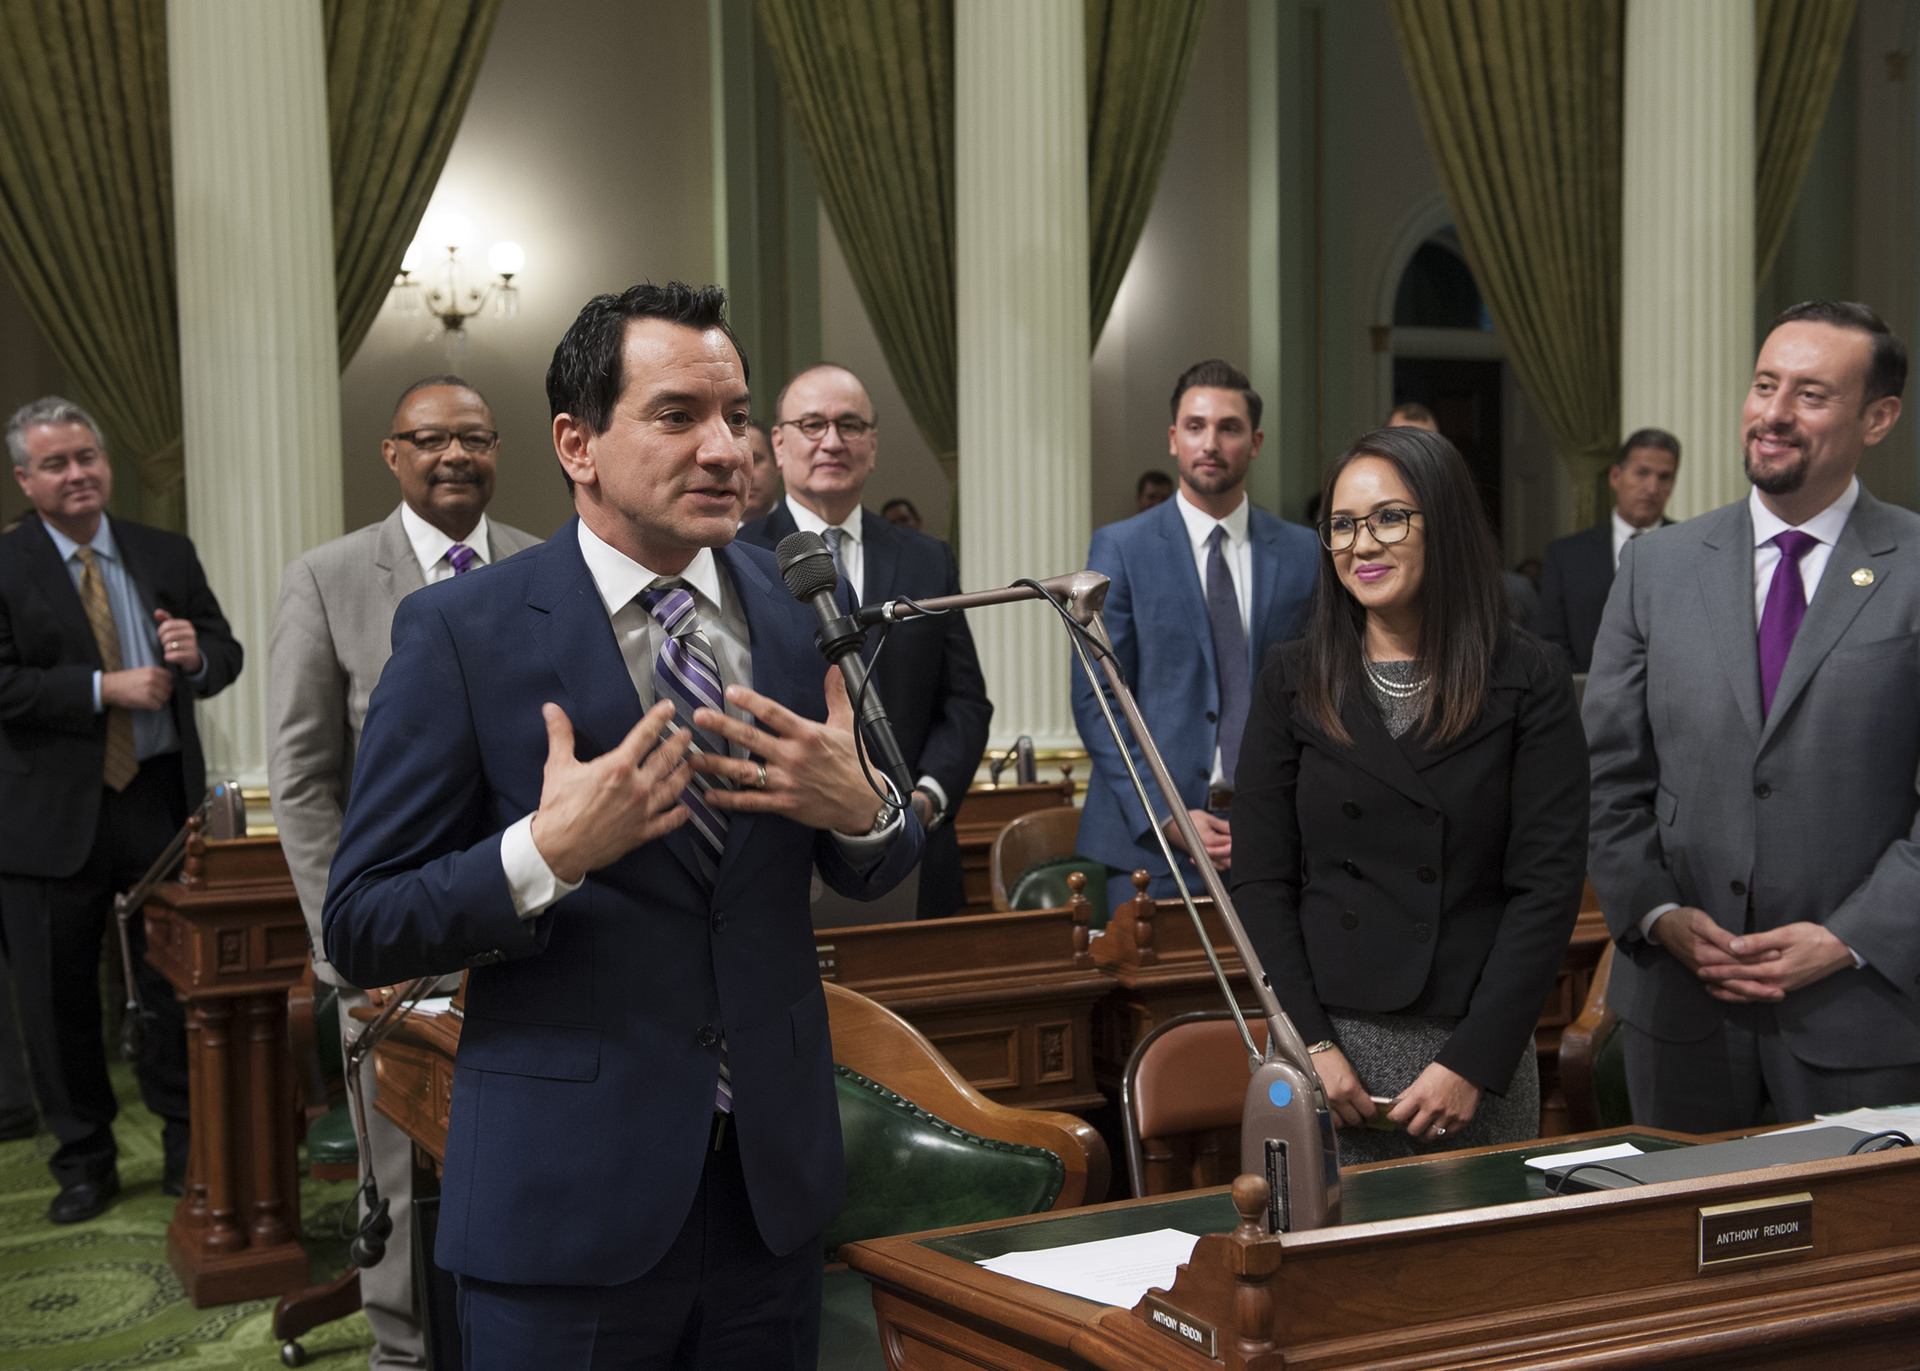 Assemblymember Anthony Rendon speaks on the Assembly floor after being elected speaker on Monday, January 11, 2016.